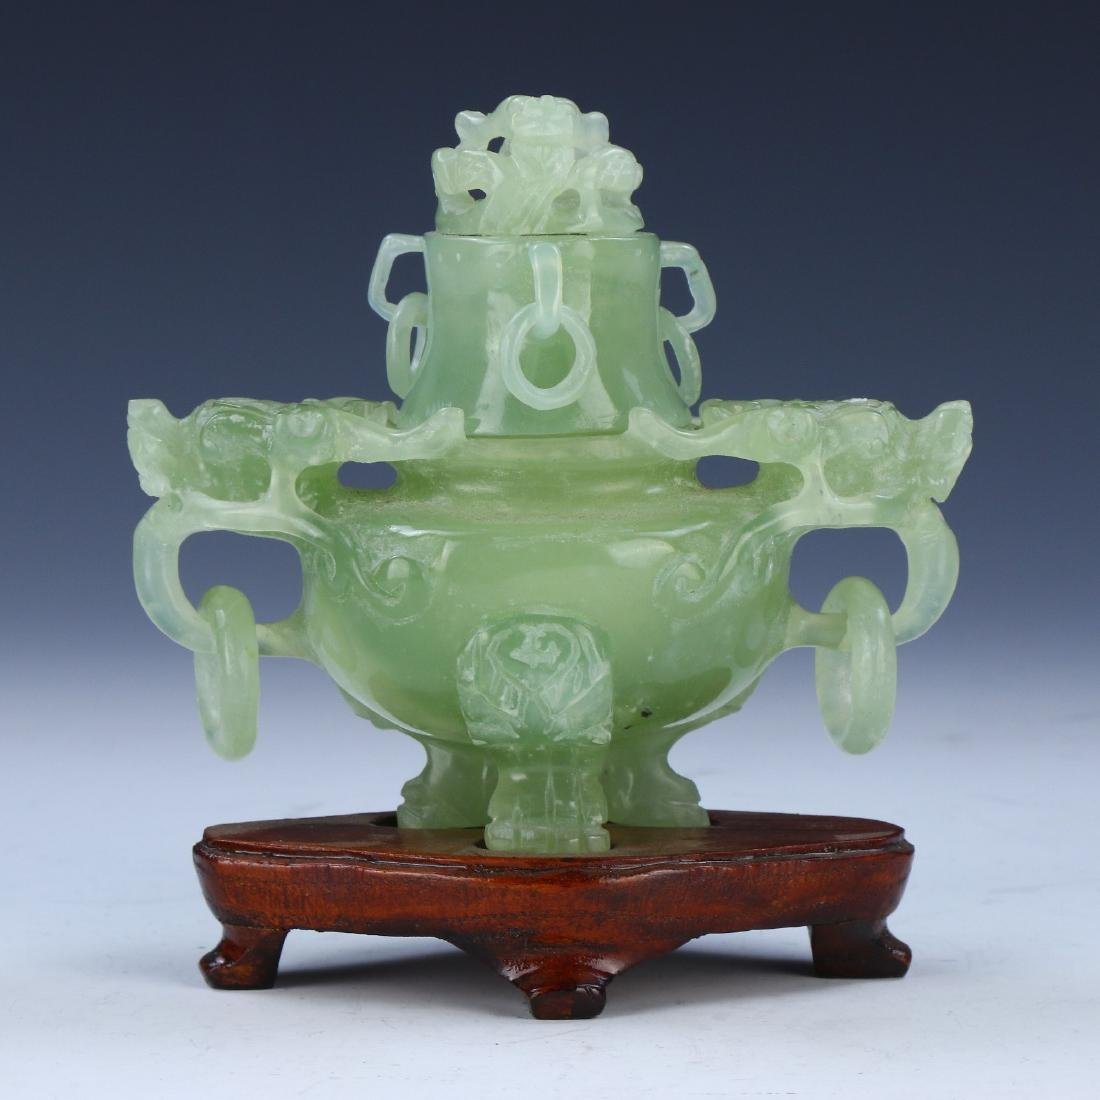 A CHINESE LIDDED SERPENTINE JADE TRIPOD CENSER